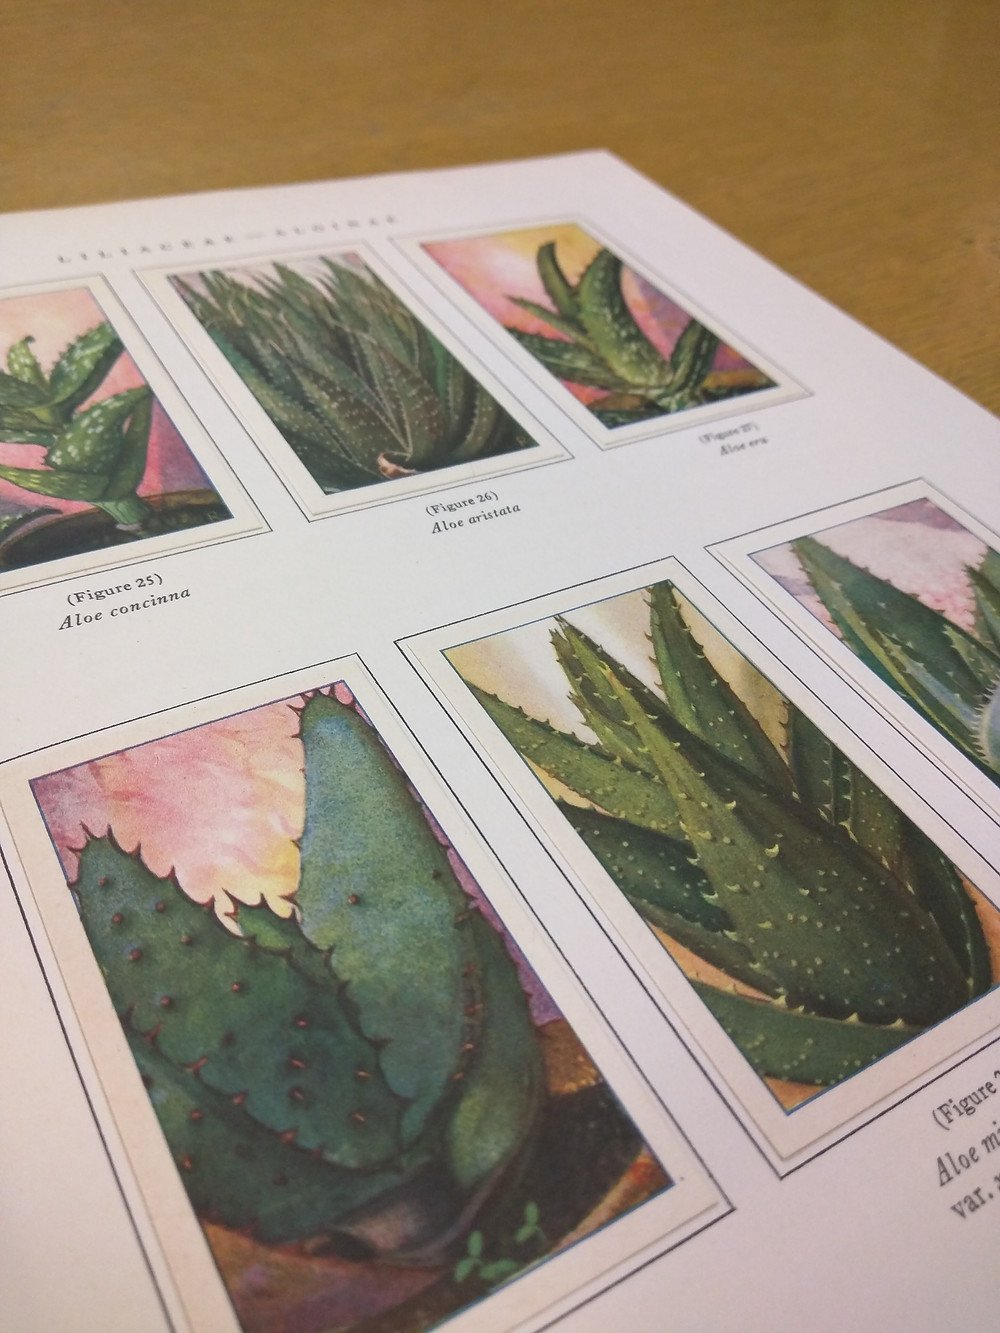 Succulent book on view at SJSU Library